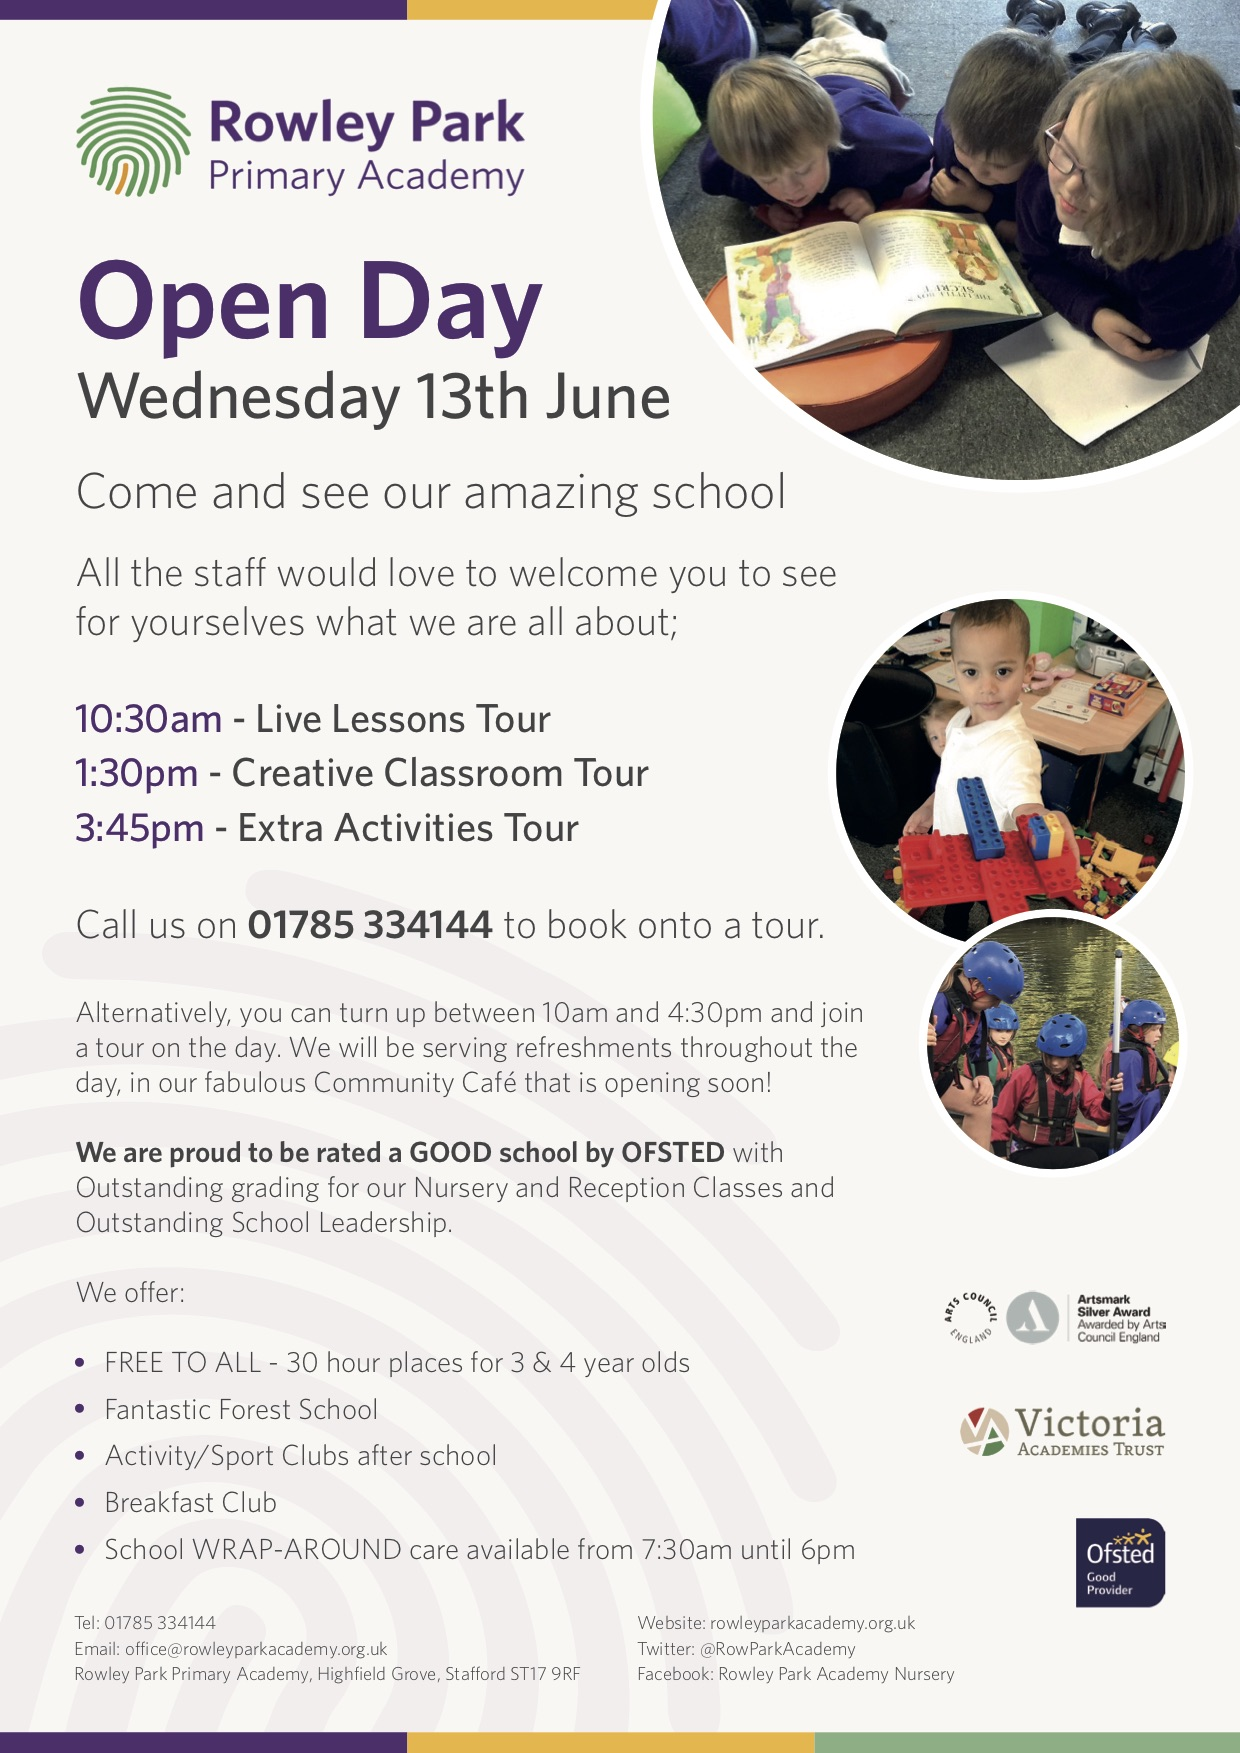 School Open Day Poster, Wednesday 13th June 2018